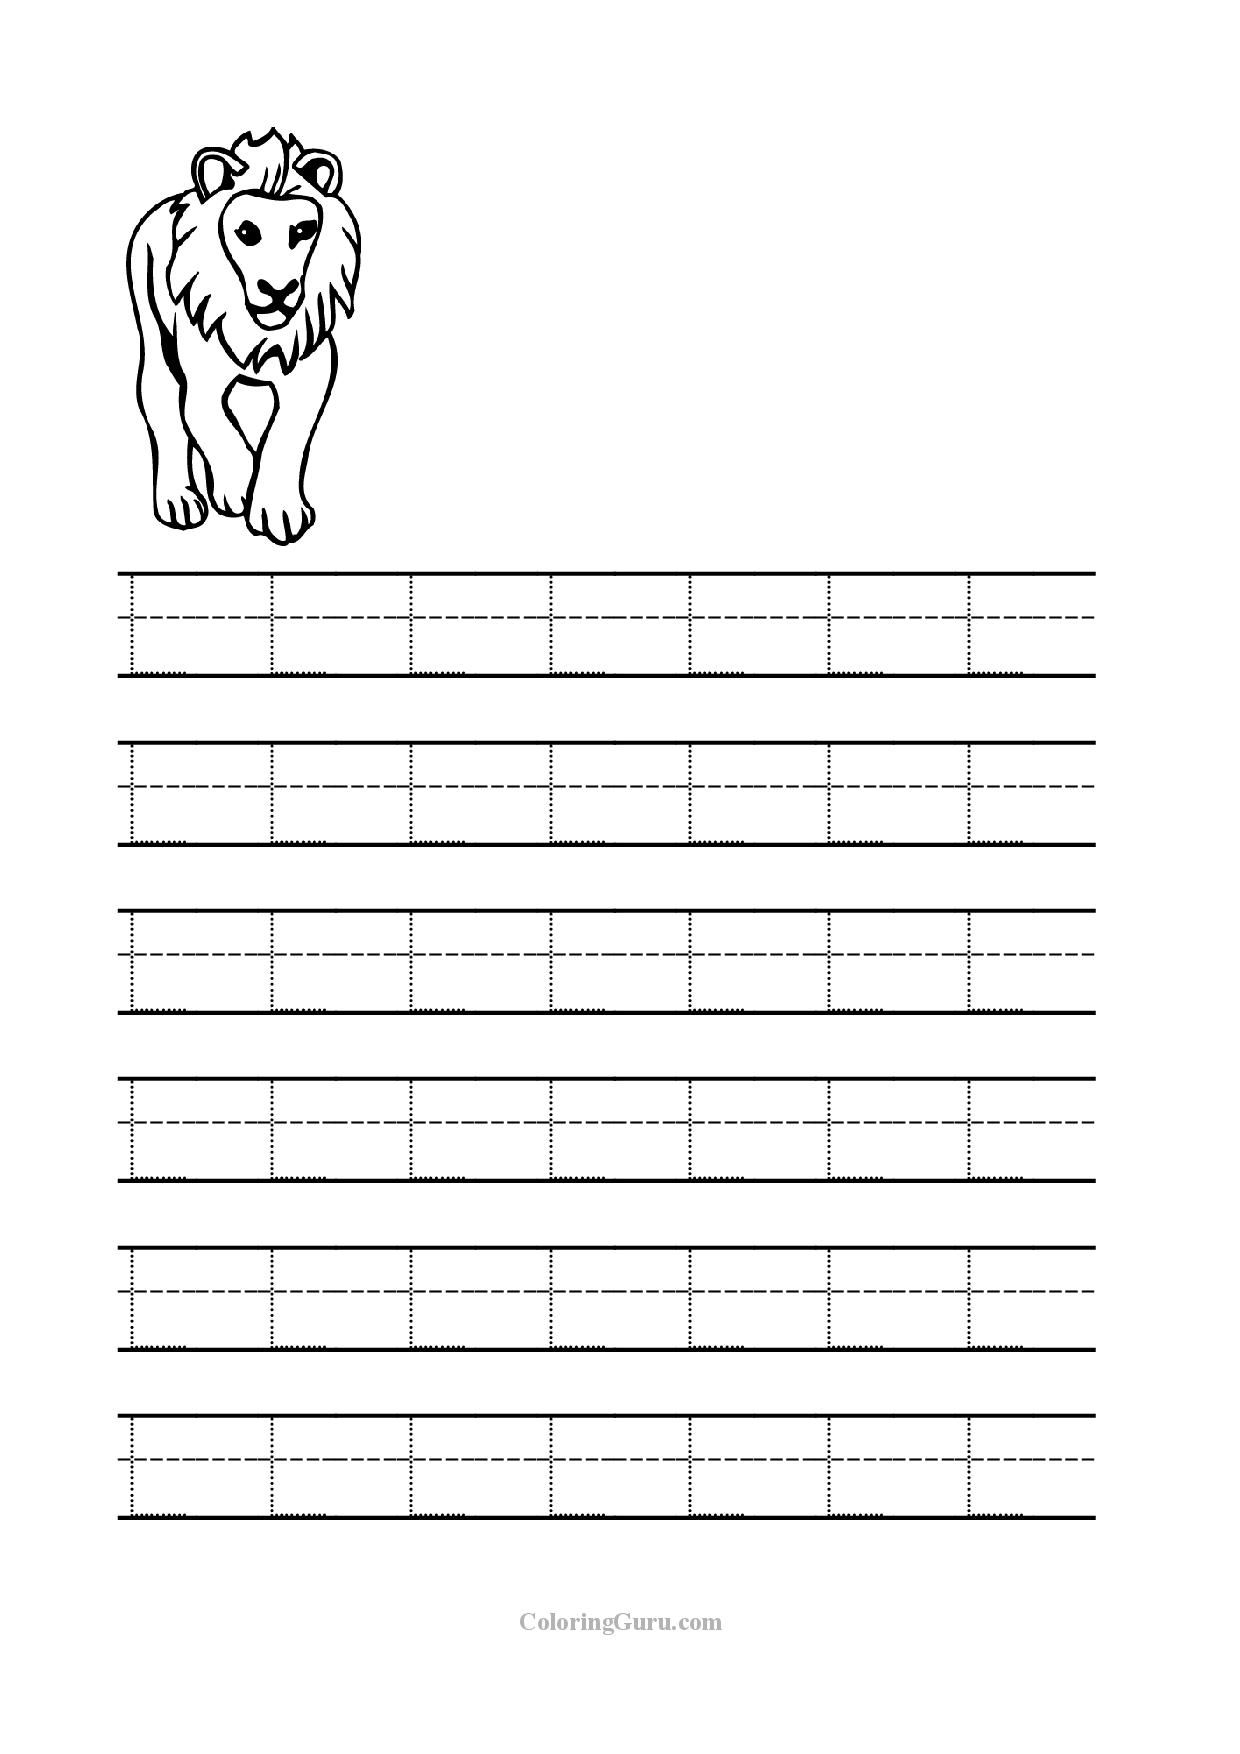 Free Printable Tracing Letter L Worksheets For Preschool in Letter L Worksheets For Preschool